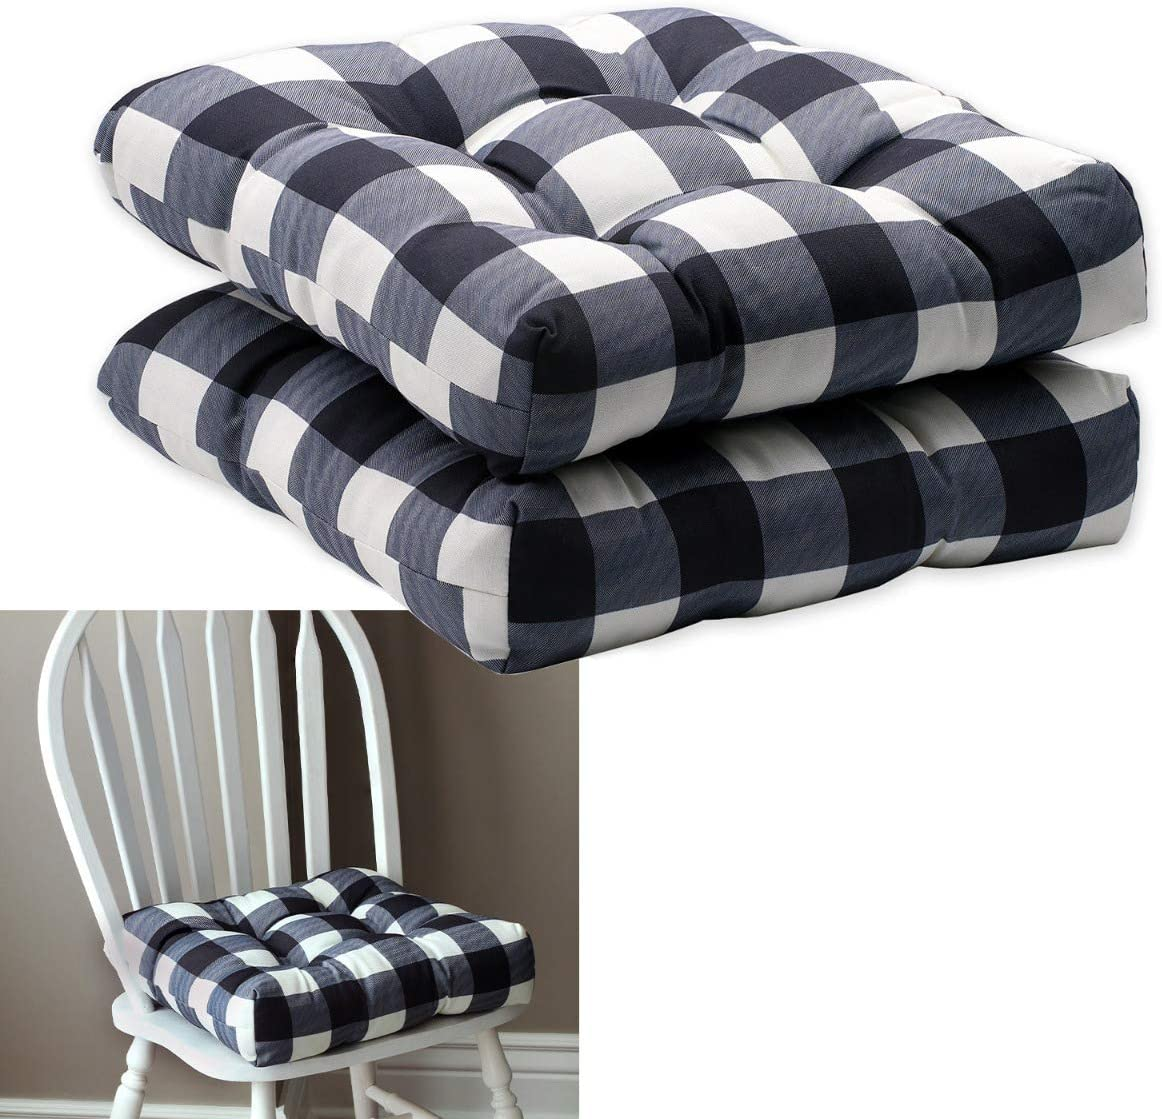 Howplum 2 Pack Kitchen Dining Chair Pad Reversible Seat Cushion For Indoor Use With Ties Black White Buffalo Check Plaid Amazon Ca Home Kitchen